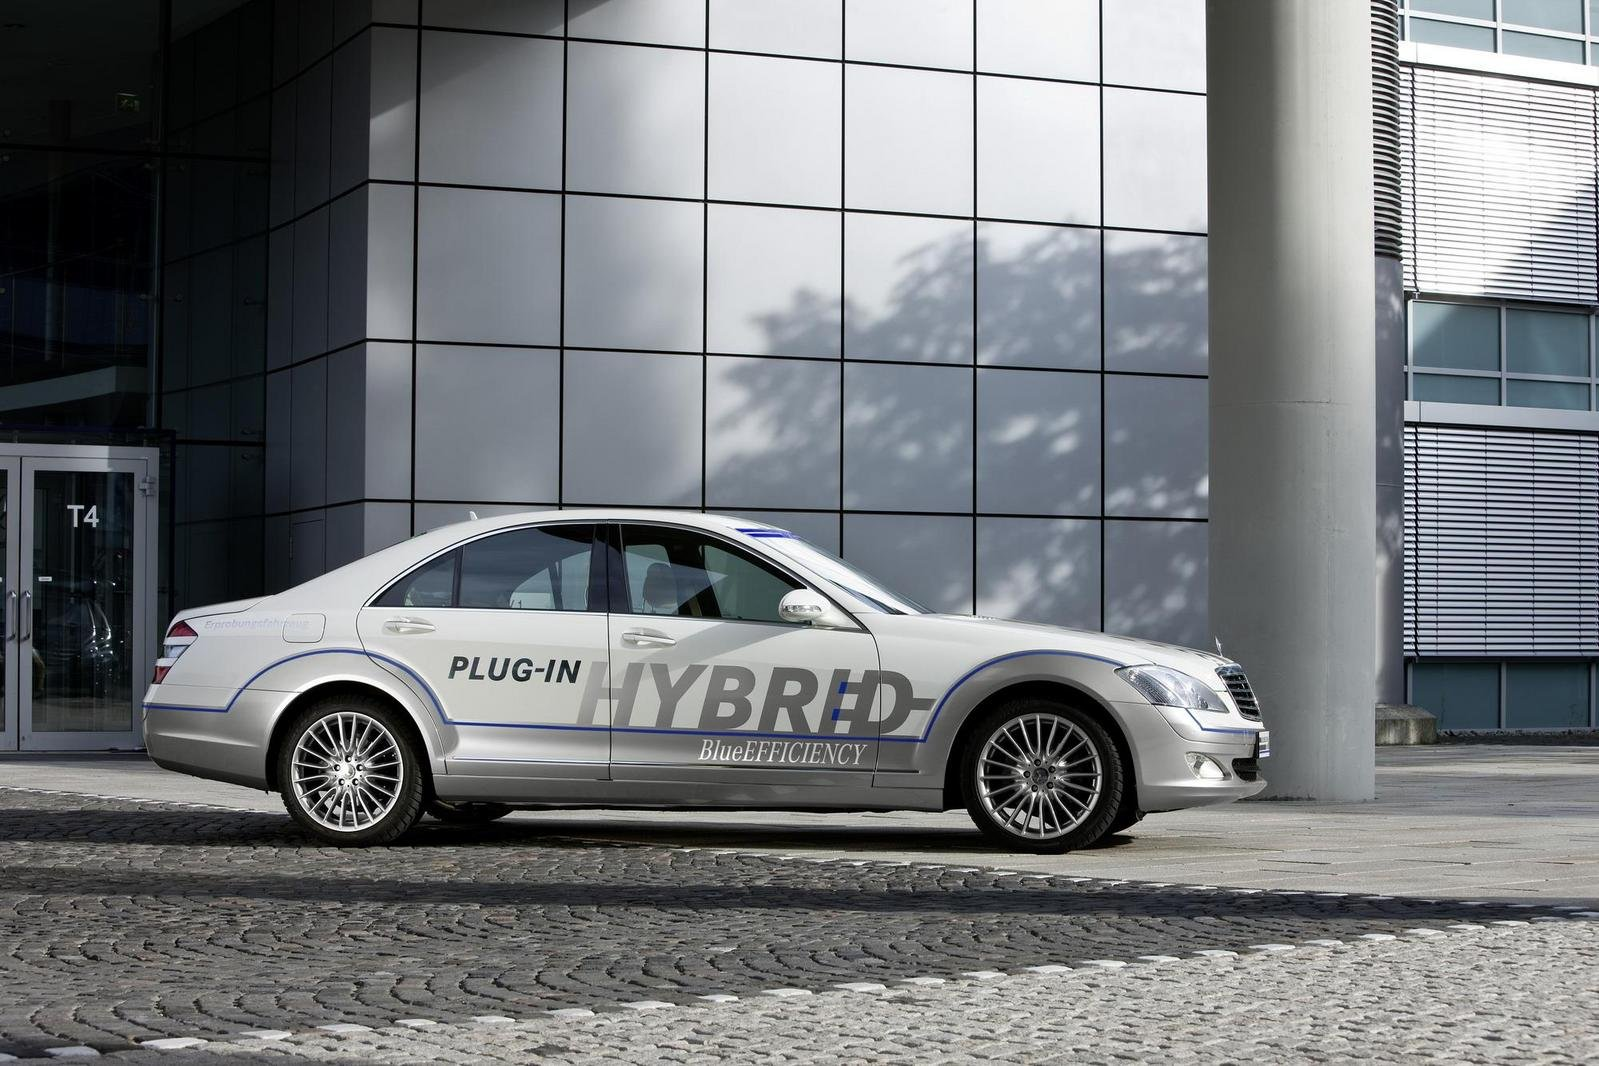 2010 mercedes benz vision s 500 plug in hybrid picture for Mercedes benz vision